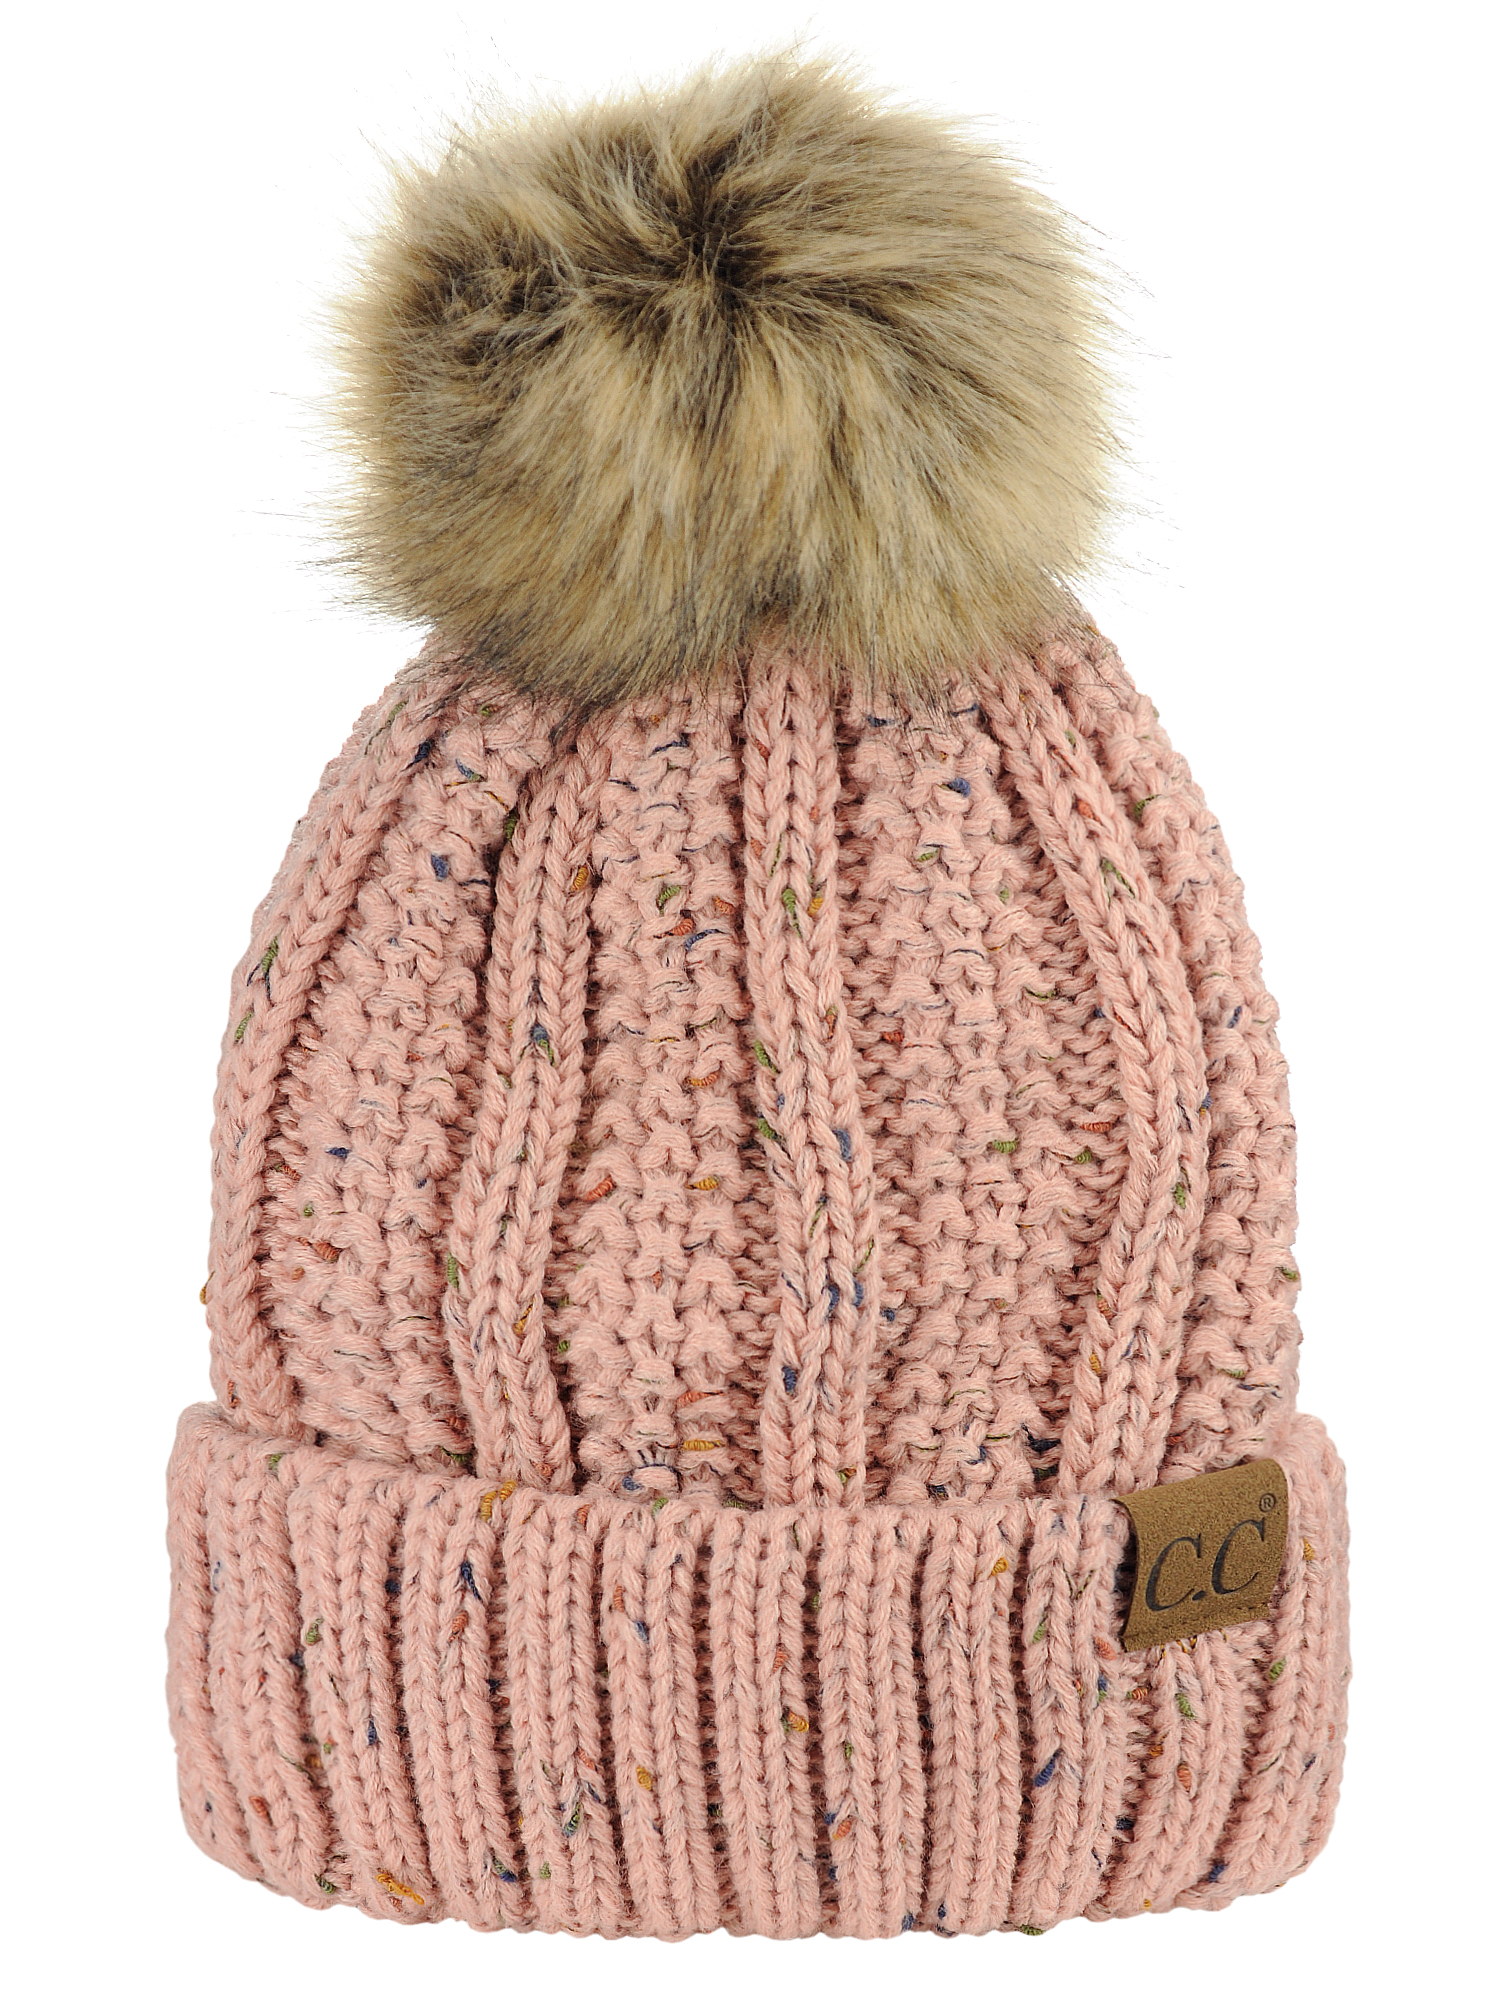 C.C Thick Cable Knit Faux Fuzzy Fur Pom Fleece Lined Skull Cap Cuff Beanie, Confetti Indi Pink